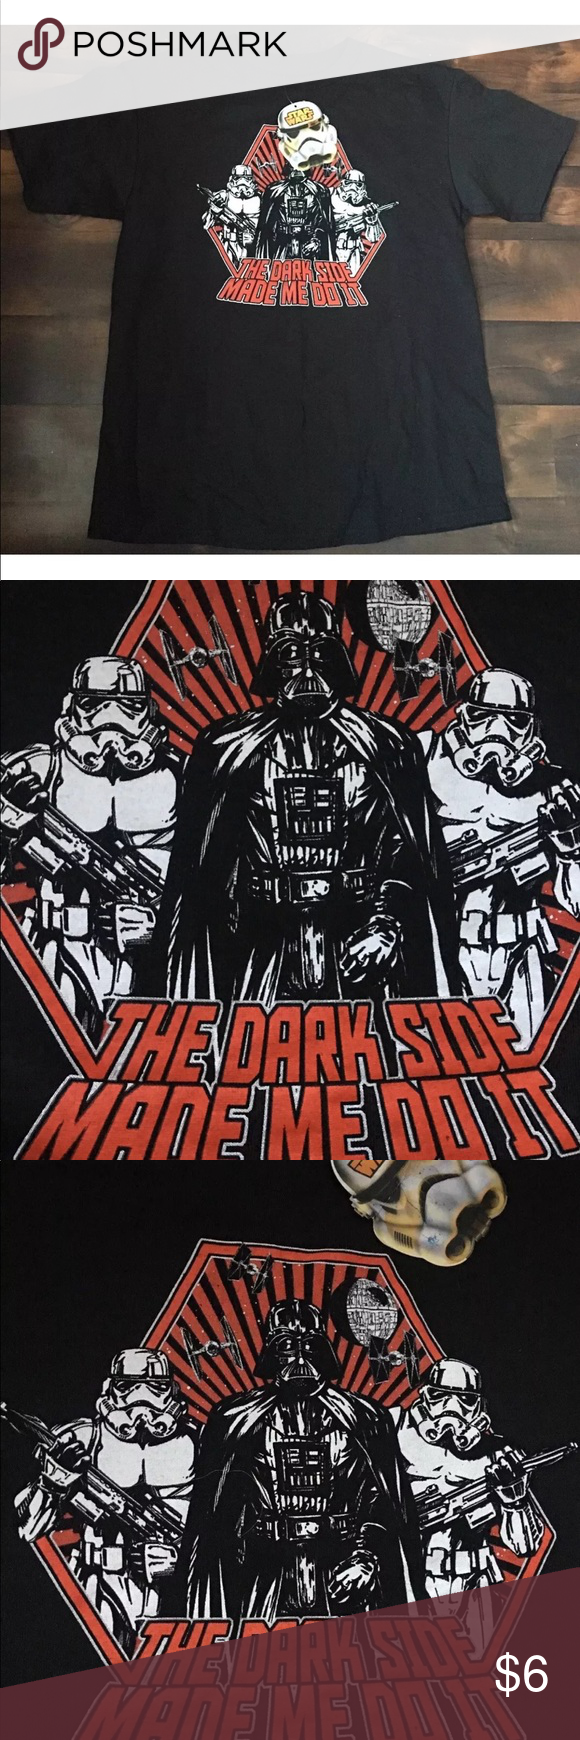 901bed17ea New STAR WARS Tee M Dark Side Made Me Do It Darth Brand new I believe it s  a 10 but check measurements . Boys medium Star Wars Shirts   Tops Tees -  Short ...